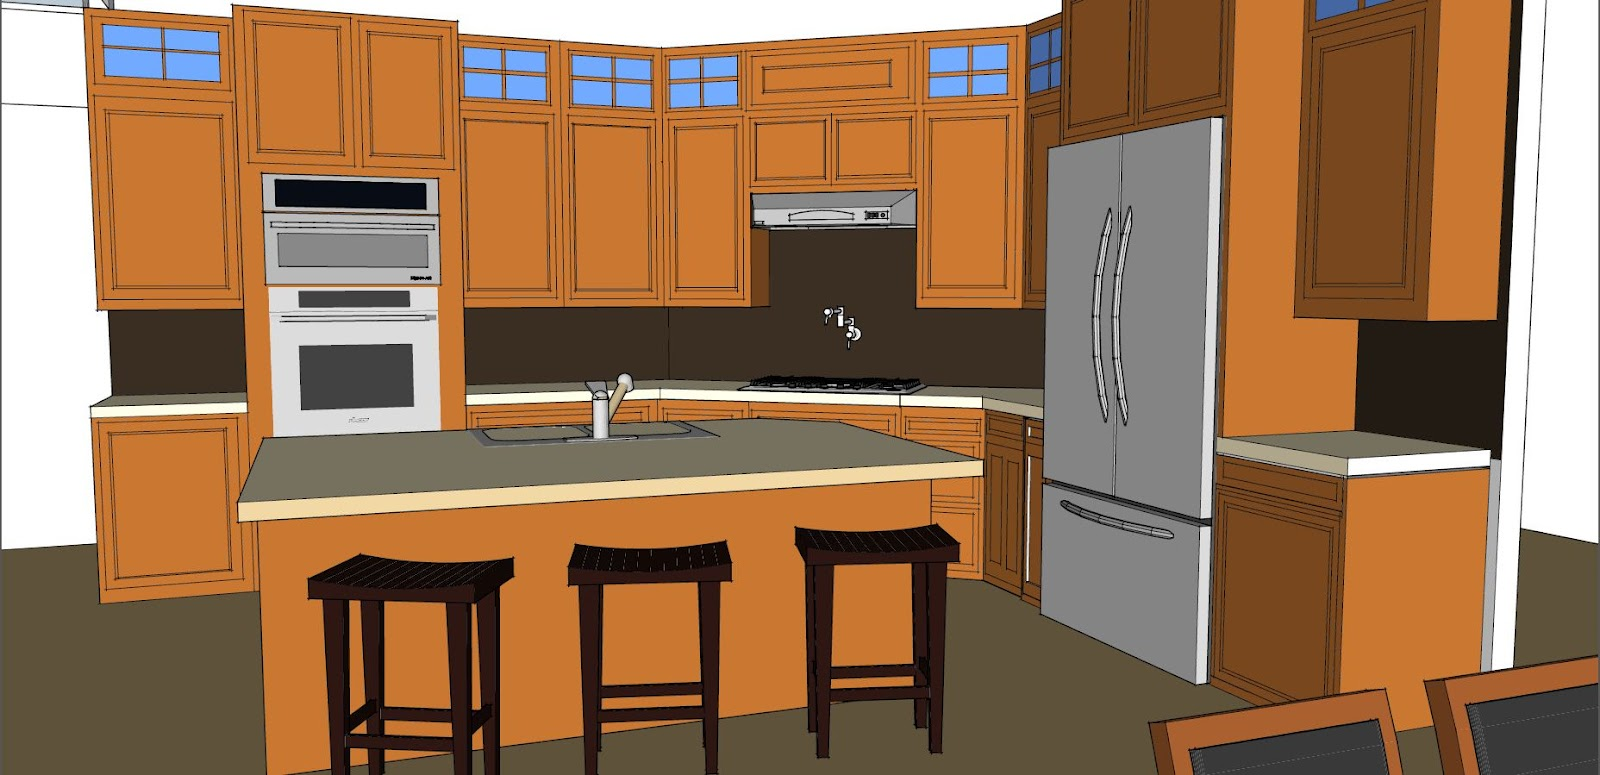 Beth c davis Kitchen design software google sketchup